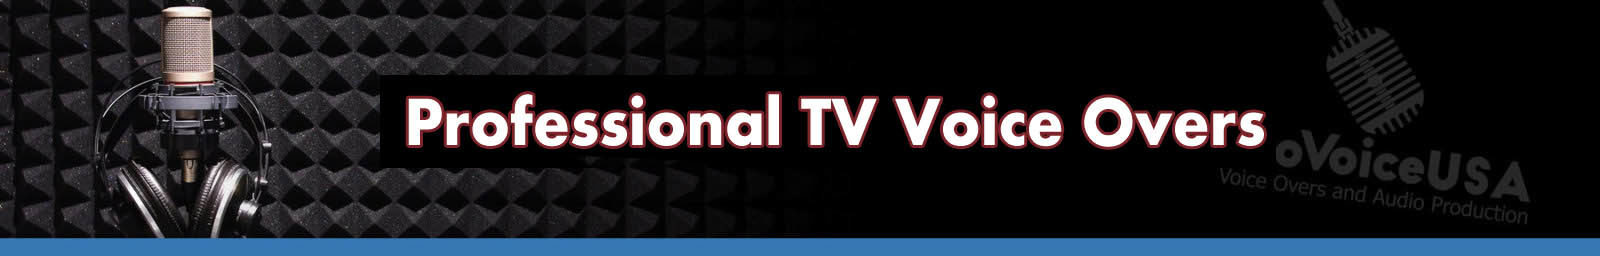 Professional TV Voice Over Header